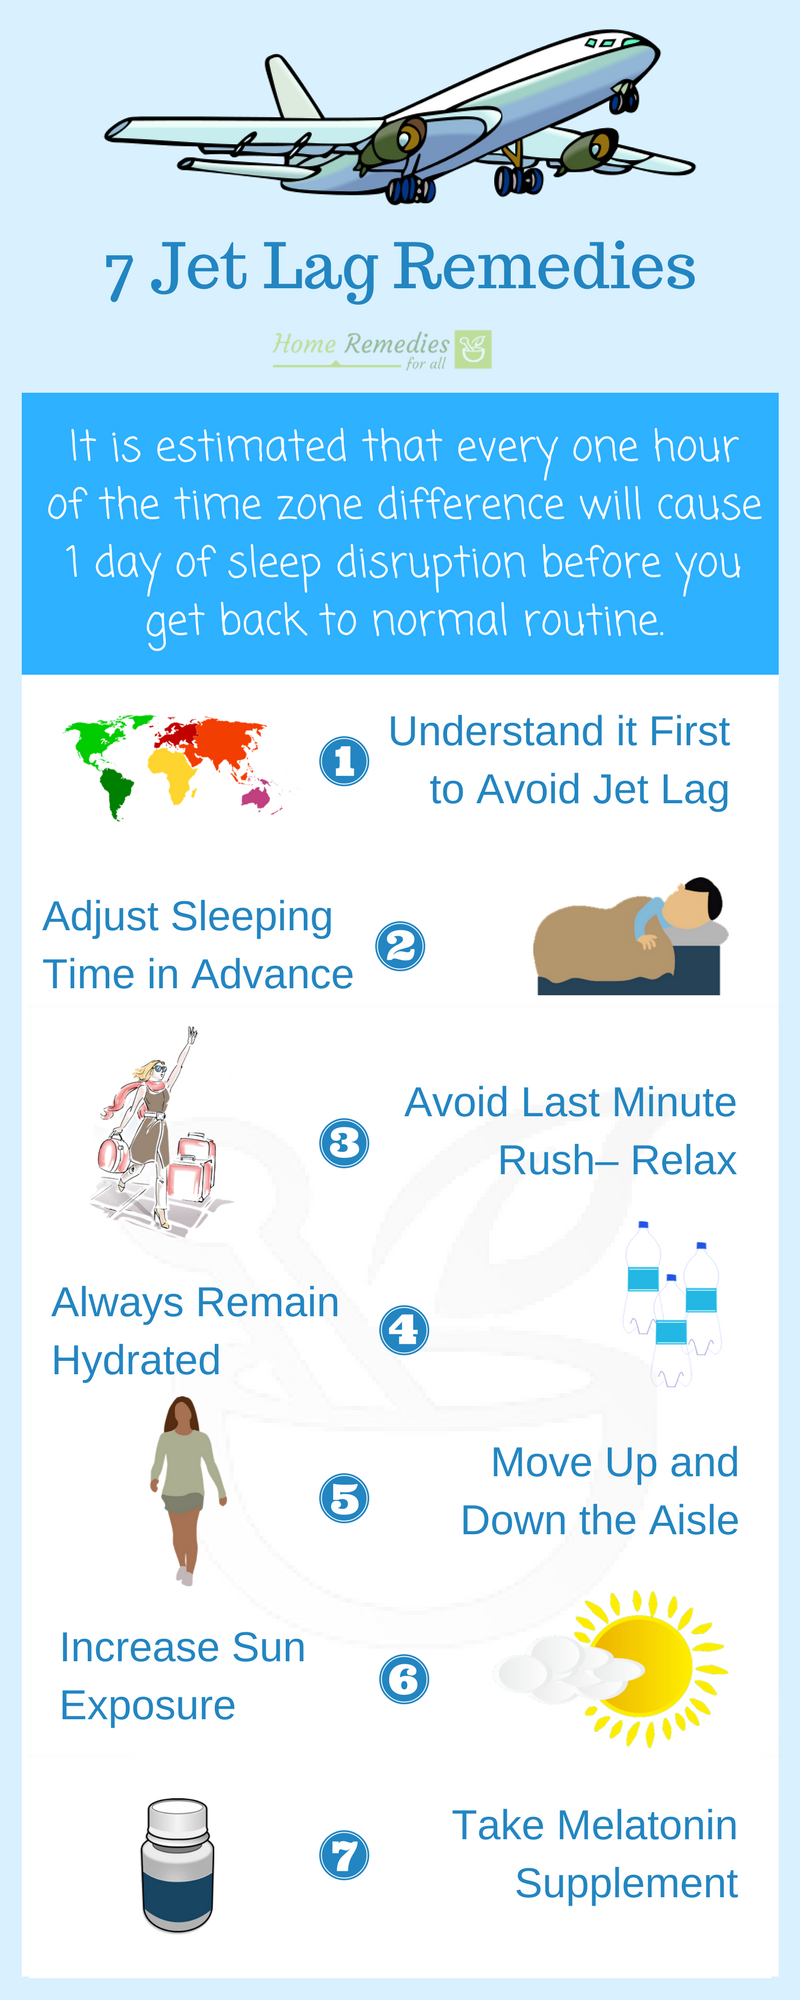 Get Rid Of Your Jet Lag With Ease By Taking Some Precautions And Some Remedies Remedies Home Remedies Natural Home Remedies